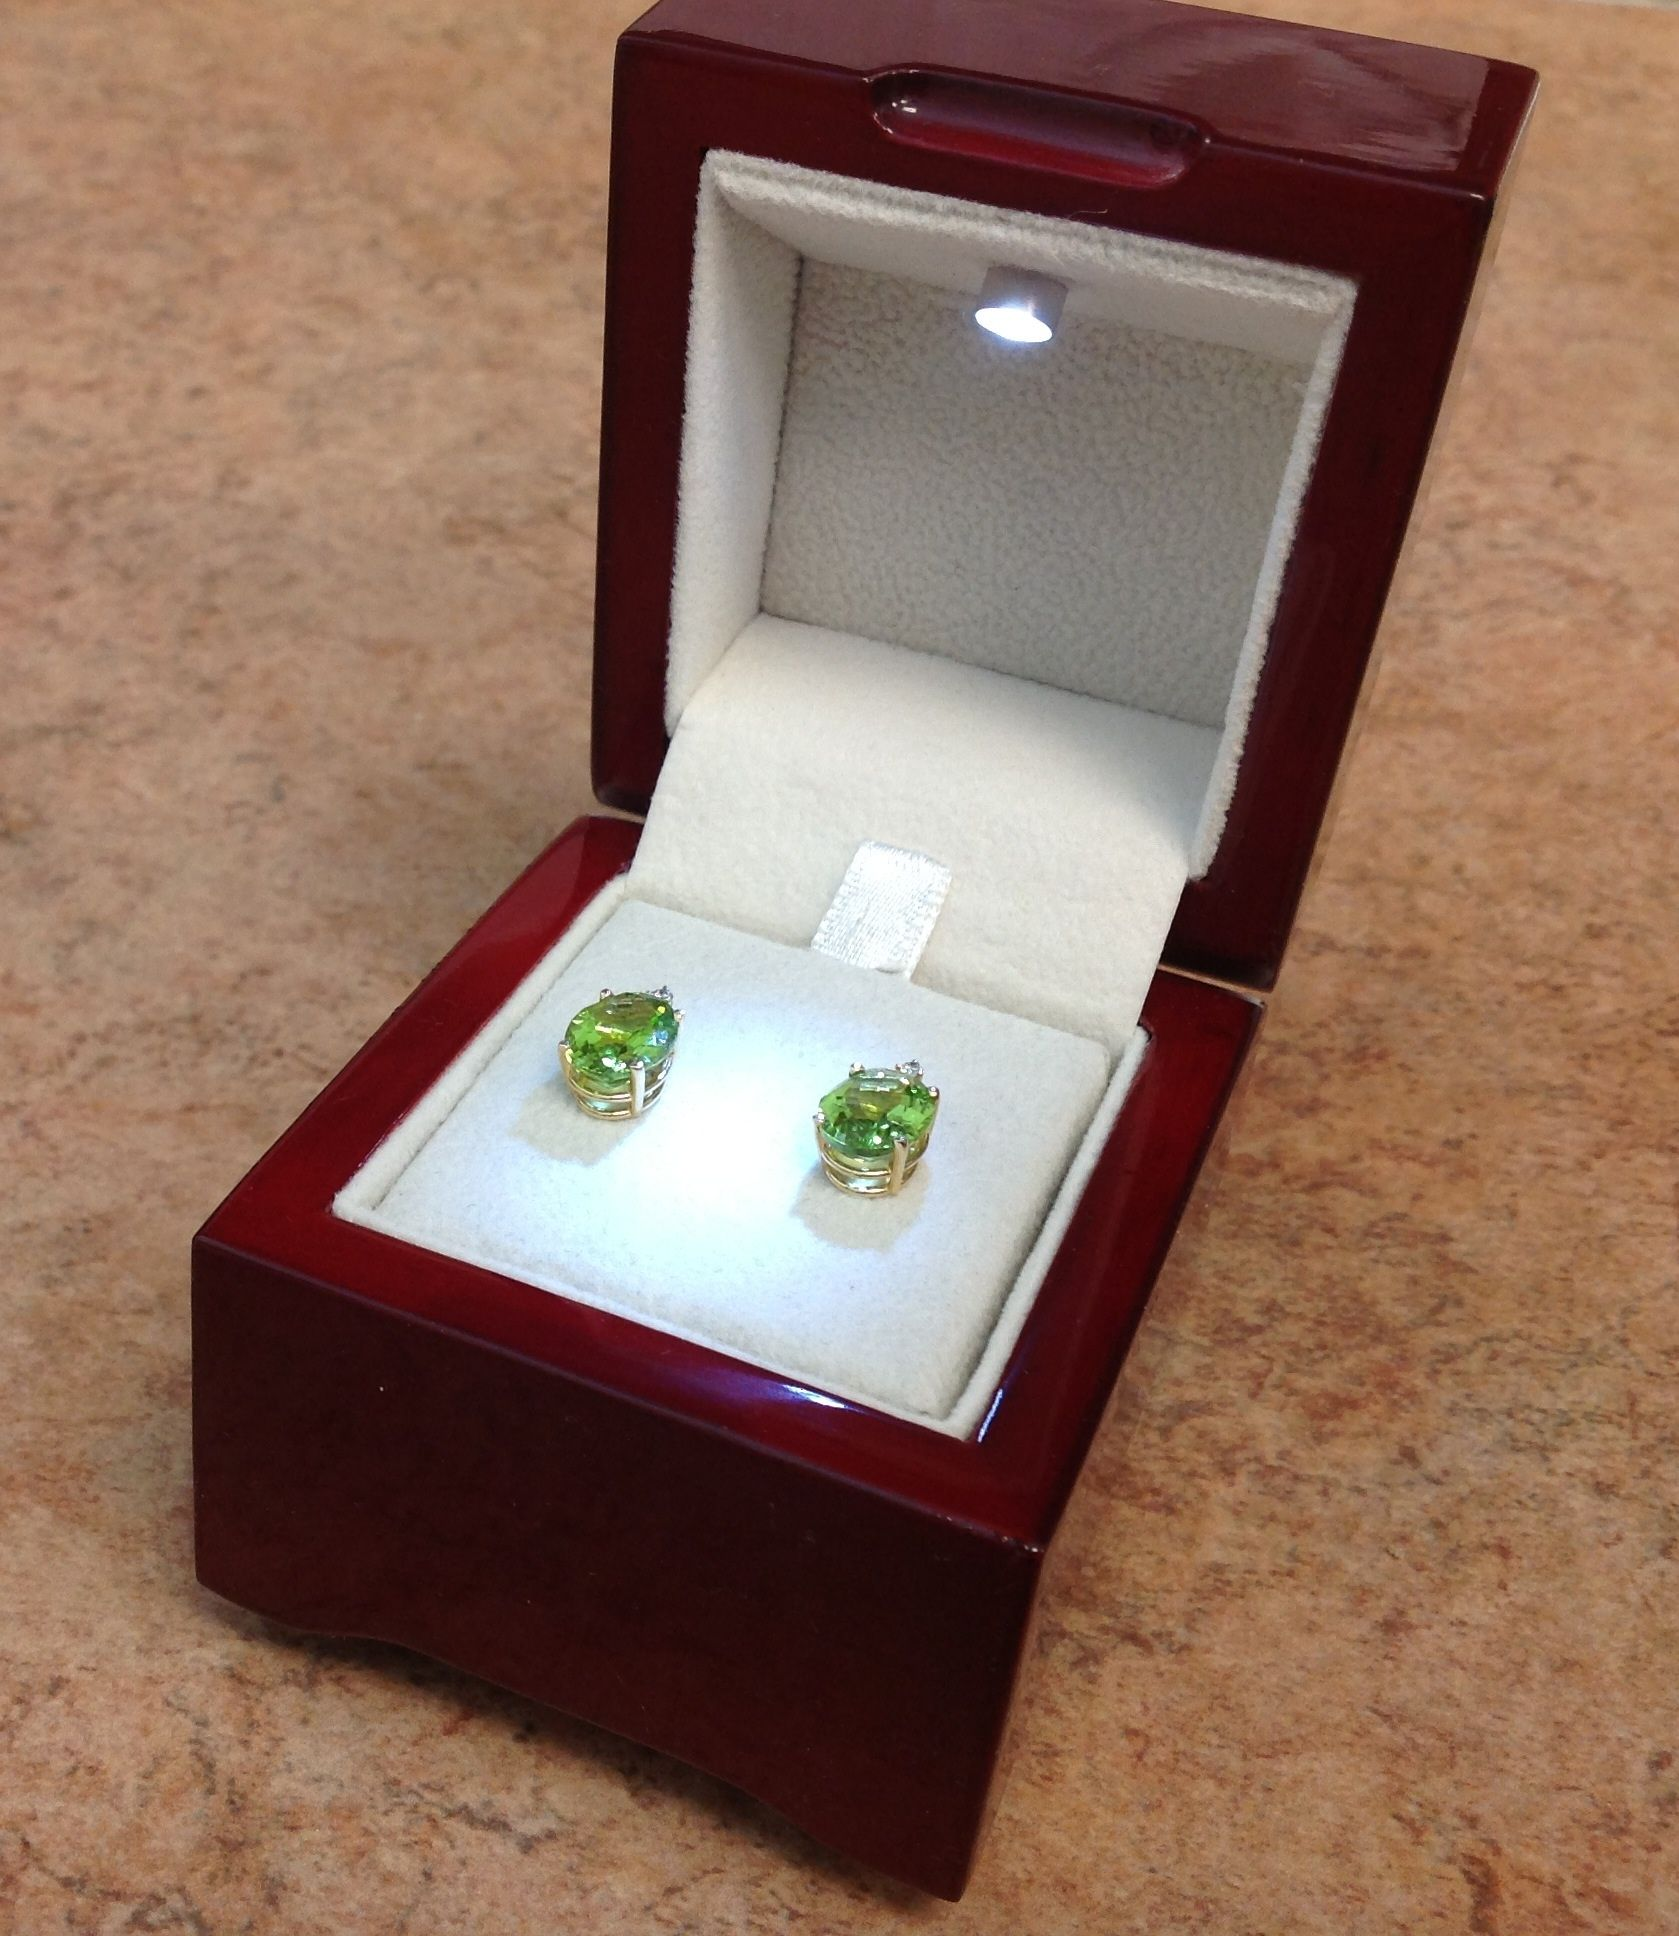 Find This Pin And More On Bright Box Inc Illuminated Engagement Ring Boxes